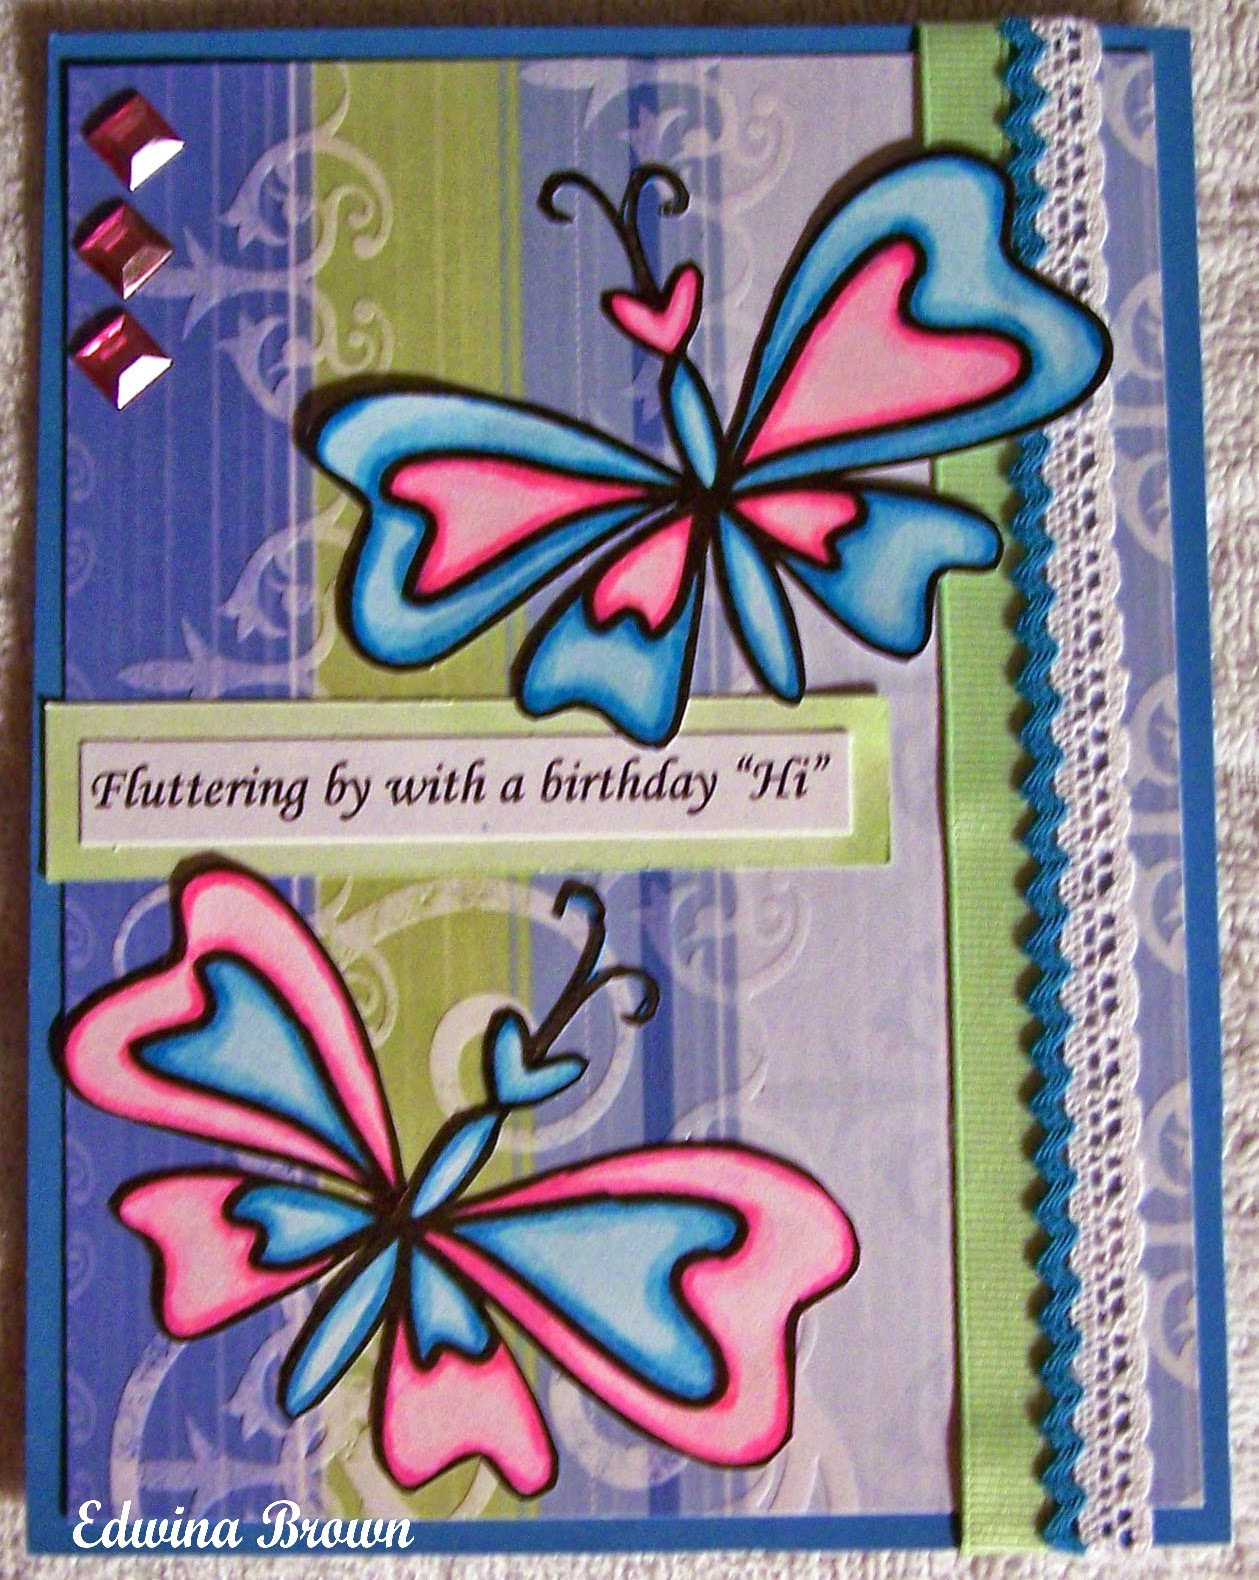 http://edwinascreations.blogspot.ca/2014/06/fluttering-by-with-birthday-hi-card.html